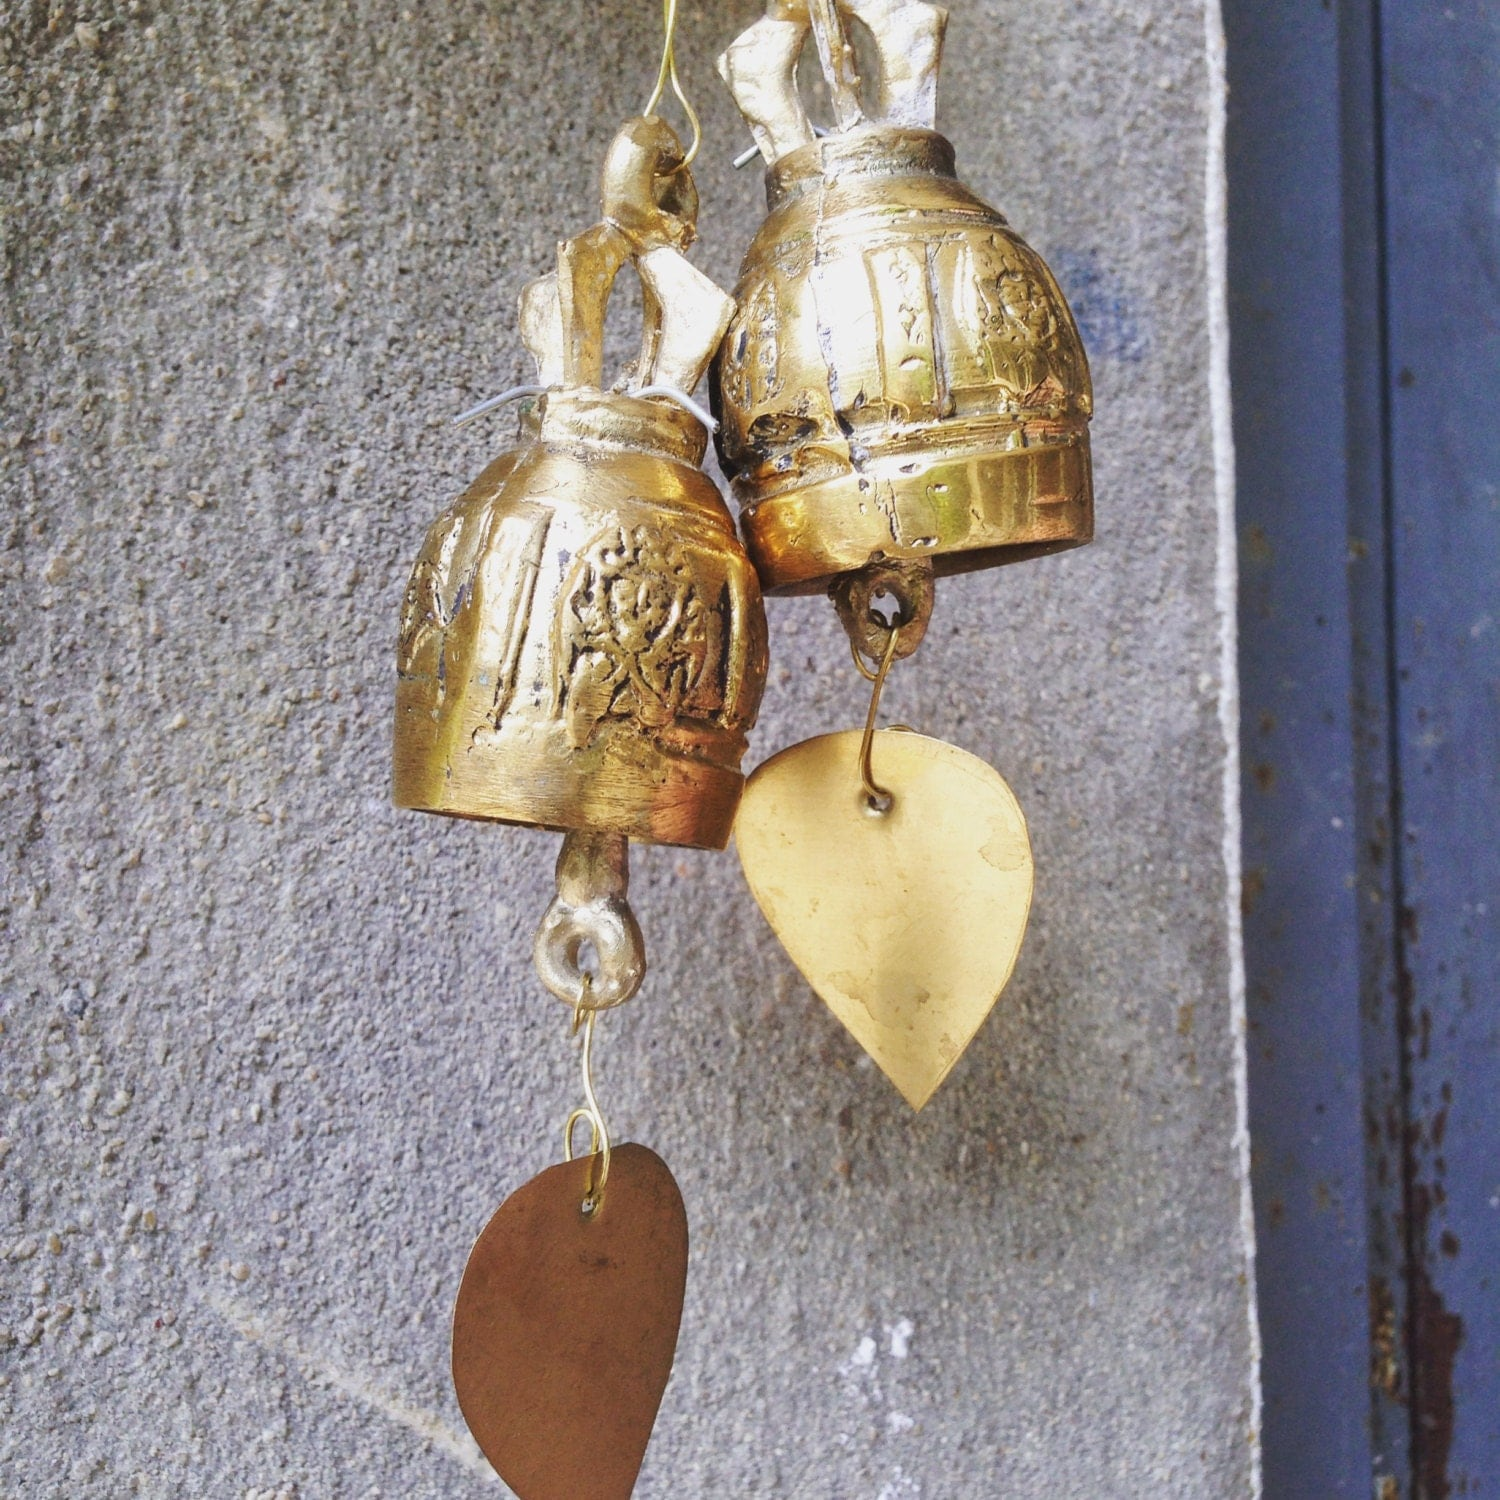 bells buddhist single men Memorial wind chimes a remembrance with music driven by the wind let loving memories live onwith a personalized remembrance of music driven by the wind every day friends and family of the bereaved are looking for a meaningful and enduring sympathy gift alte.